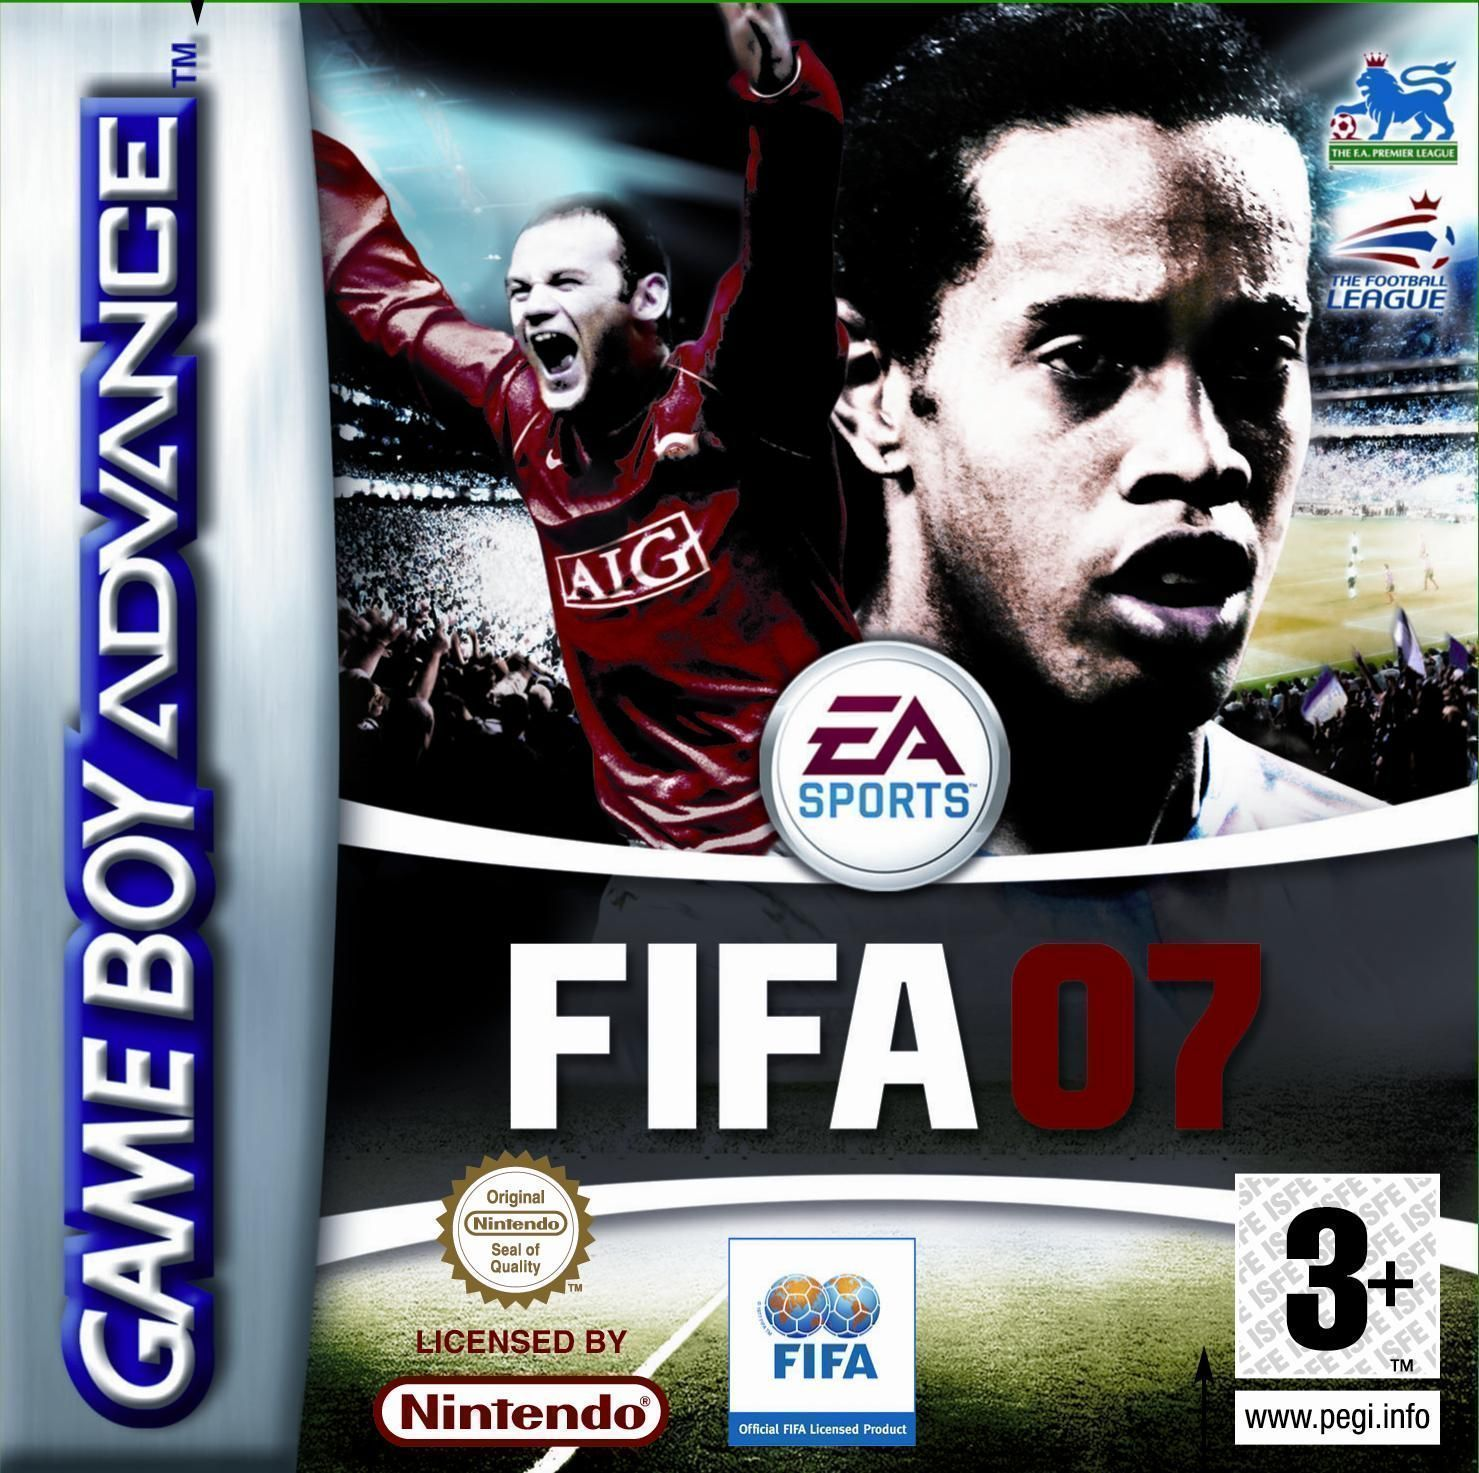 Download fifa 2007 full pc game seo intelligence alliance forum.